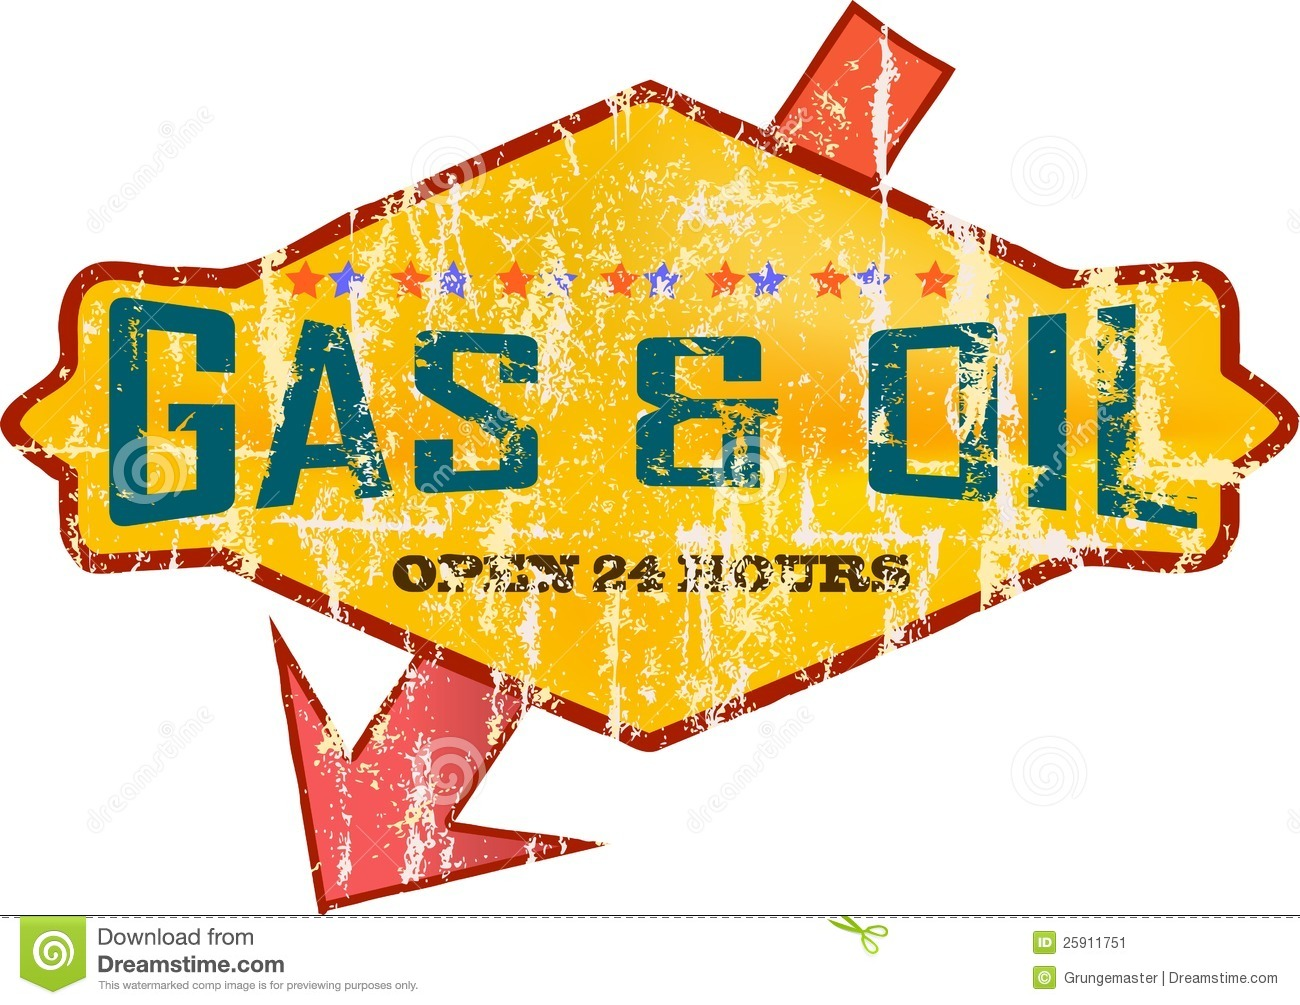 royaltyfree stock photo download gas station sign